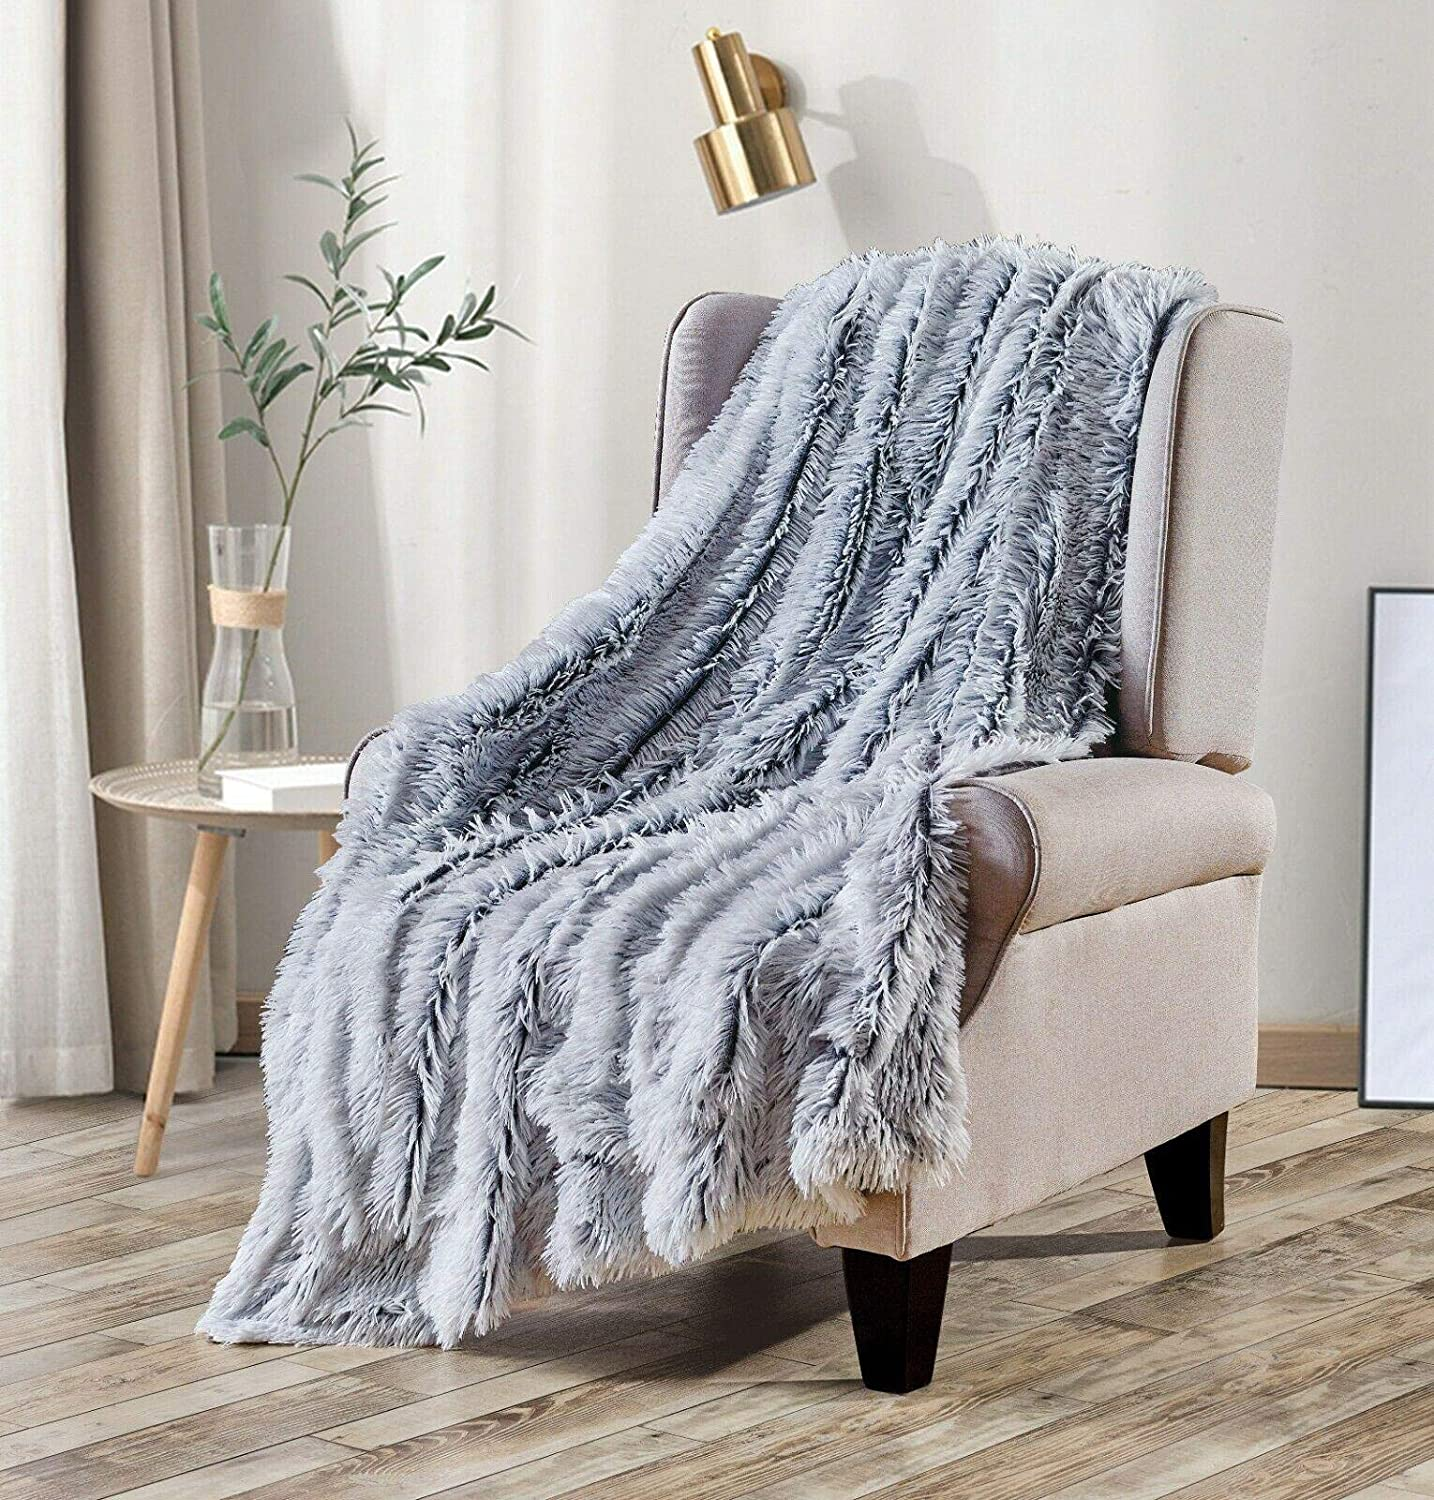 Long Shaggy Faux Fur Throw New mail order Furry Blanket Fluffy Plush Reservation Re